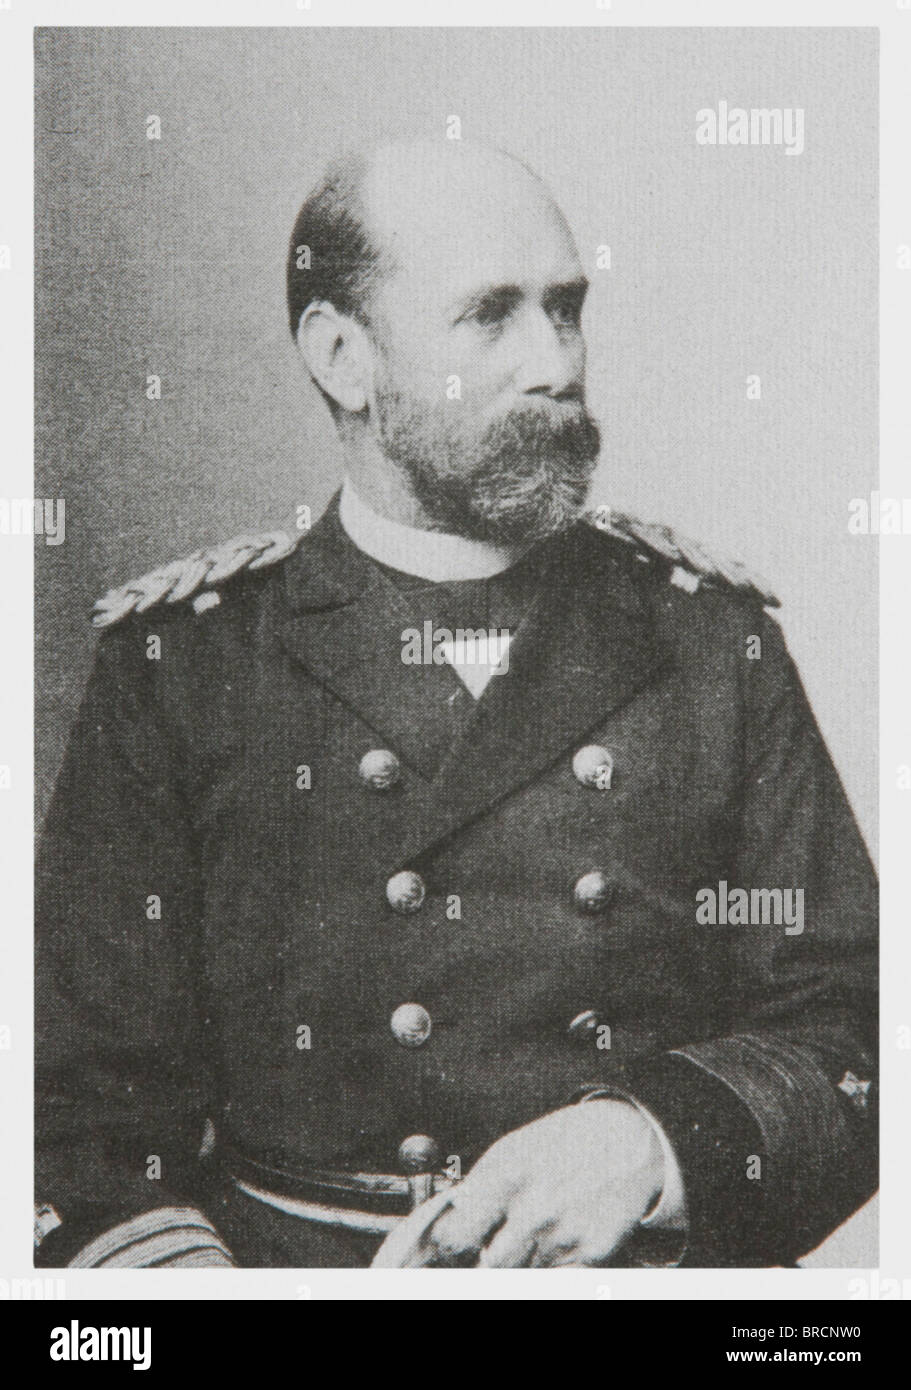 Admiral Otto von Diederichs (1843 - 1918), certificates and documents from his legacy Commission as a Sea Cadet - Stock Image